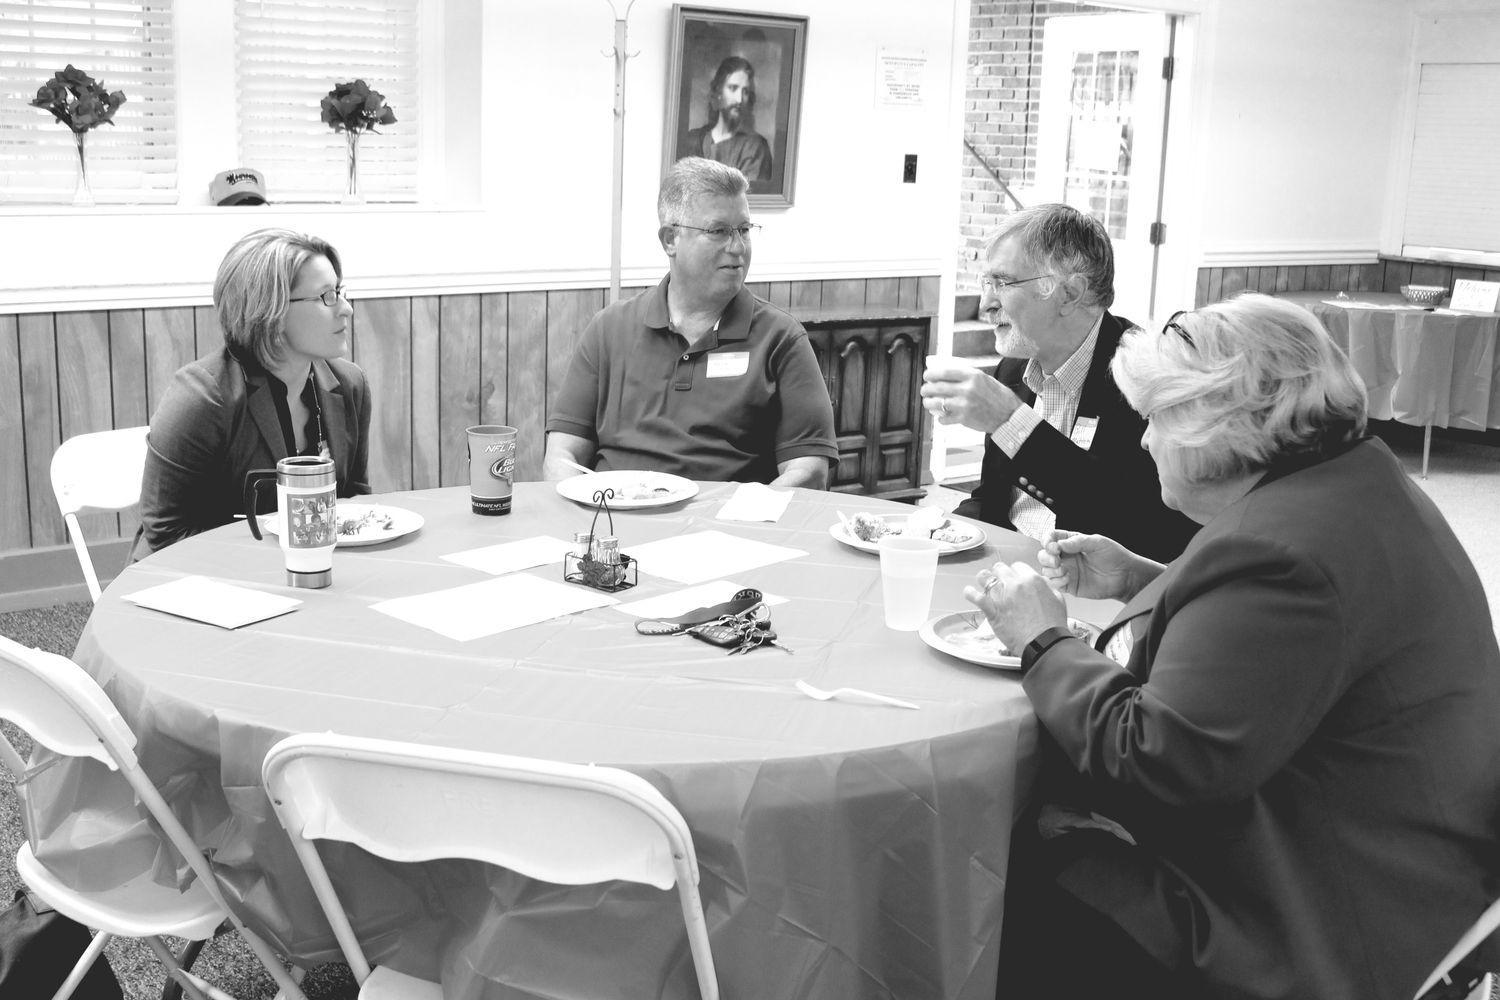 Business leaders and clergy discuss their understanding of the intersection of faith and business